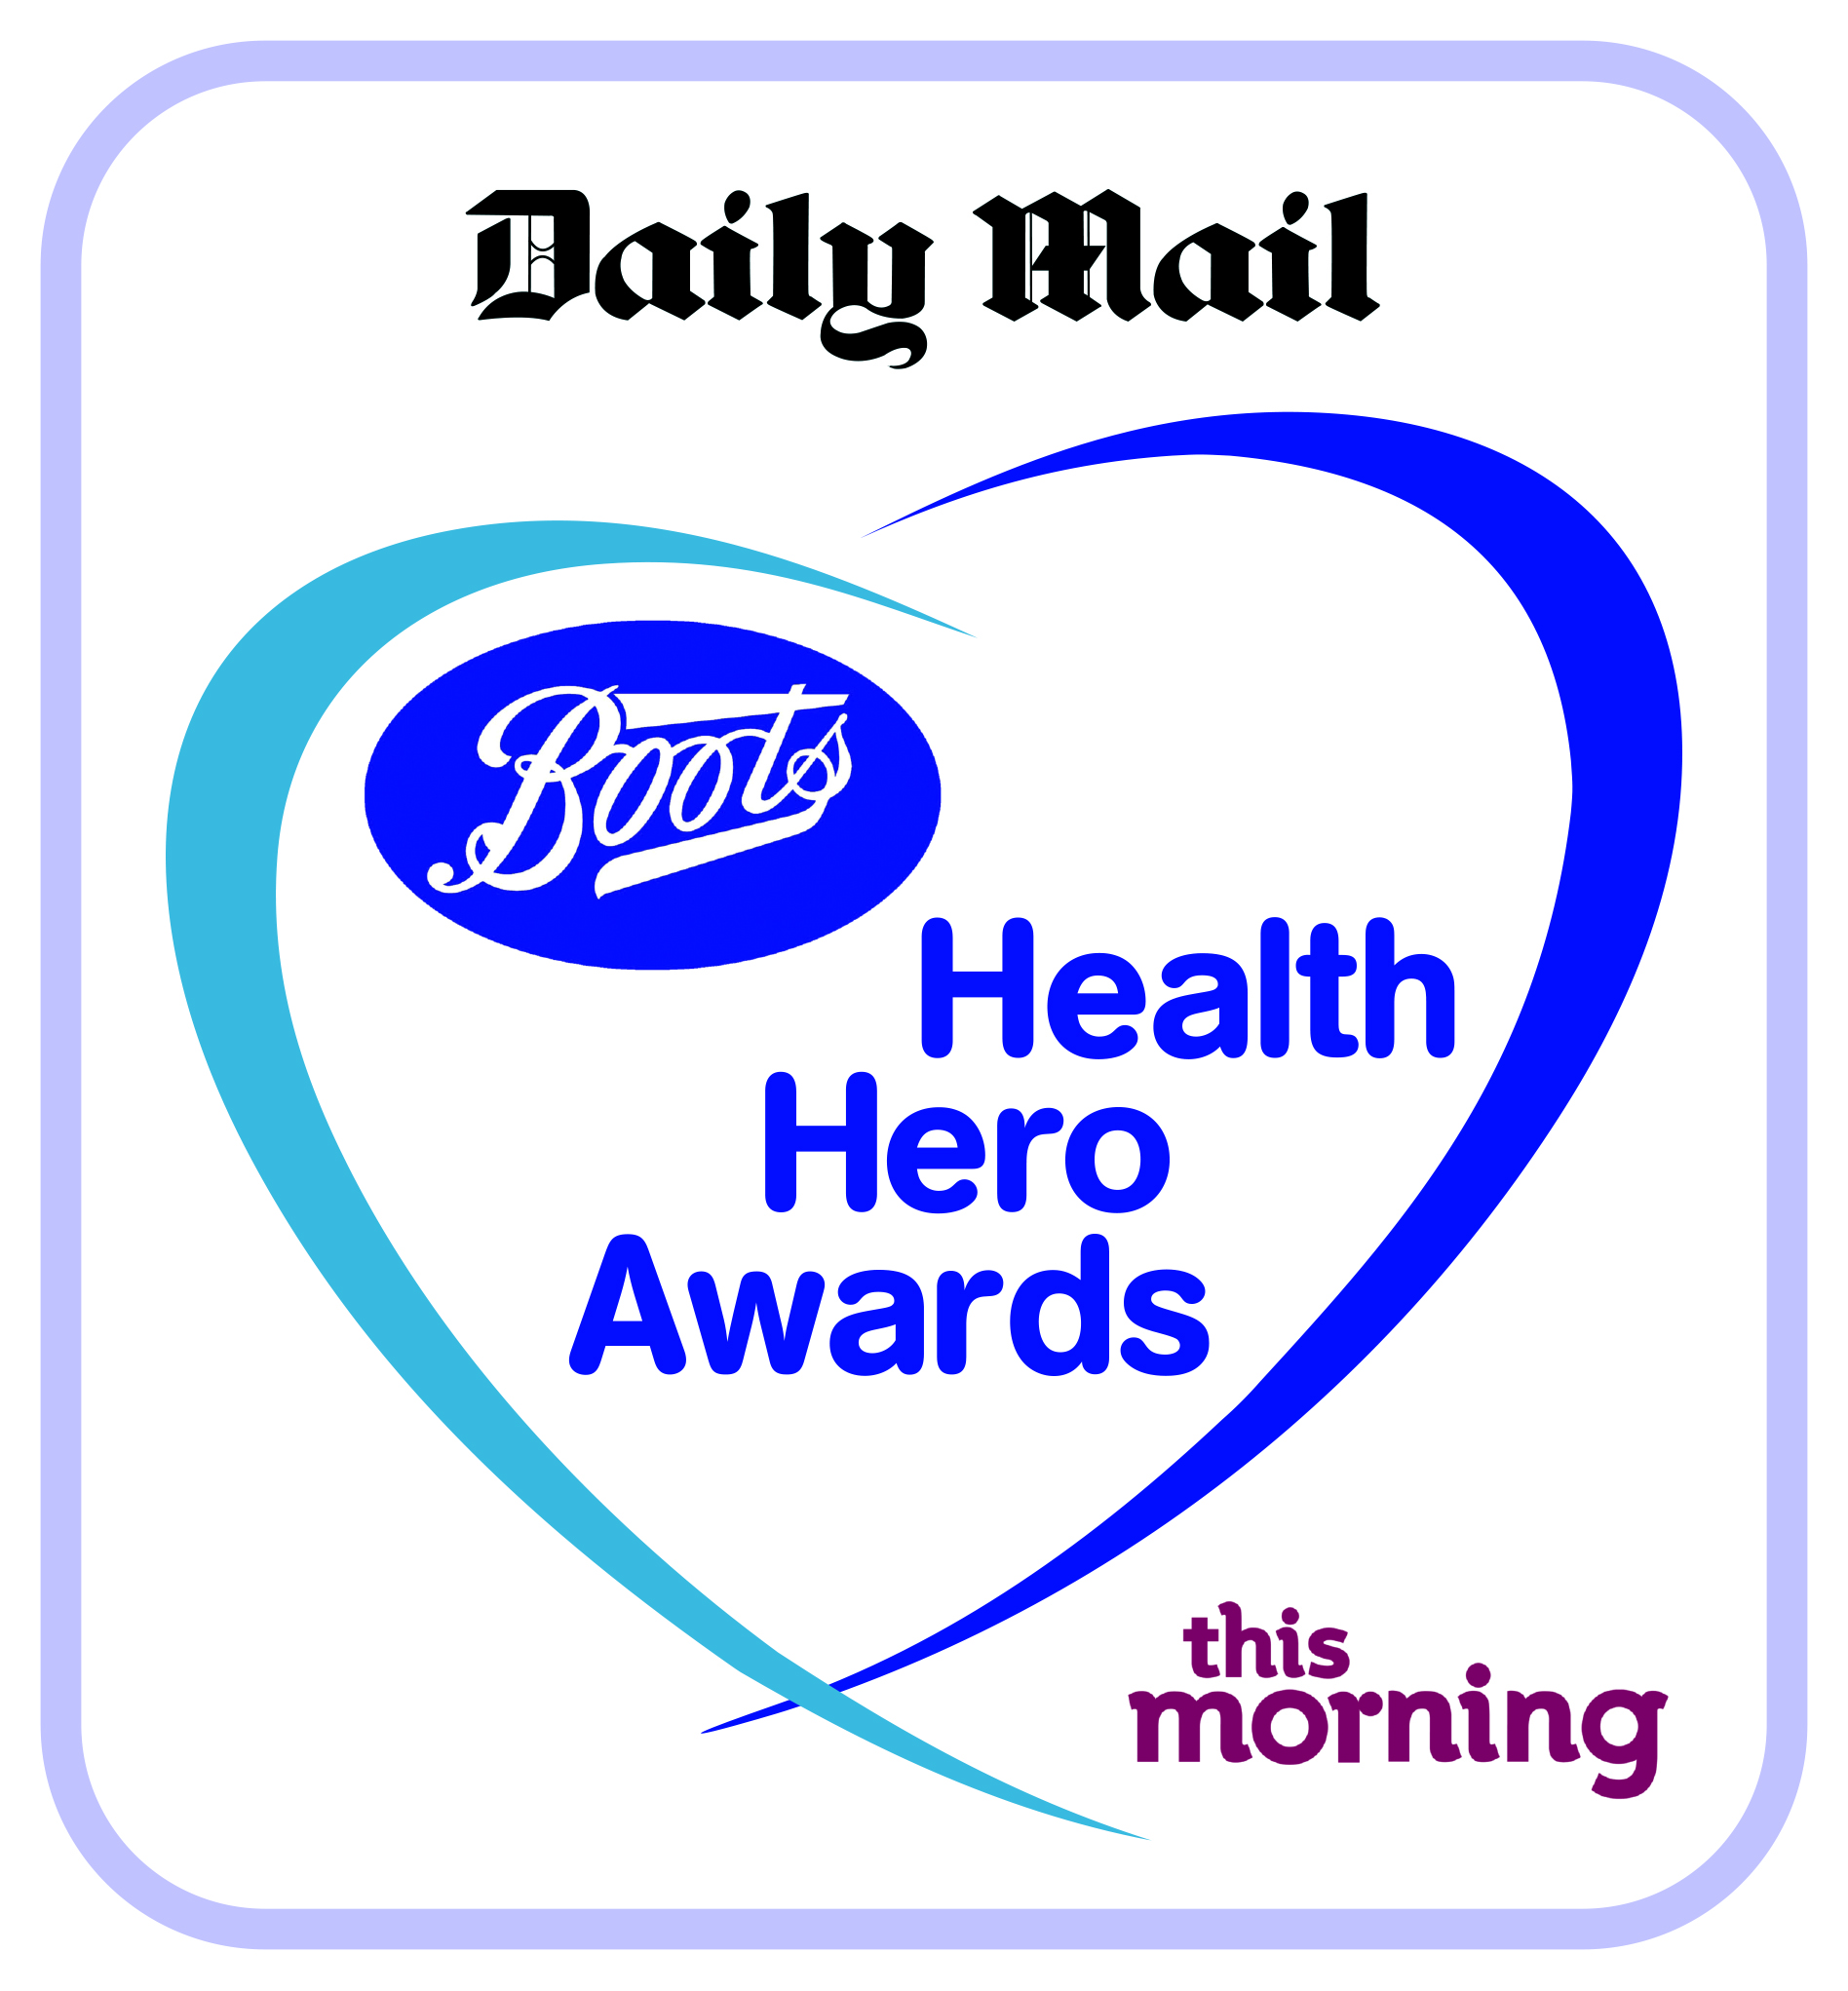 Boots Health Hero Awards logo graphic for 2014